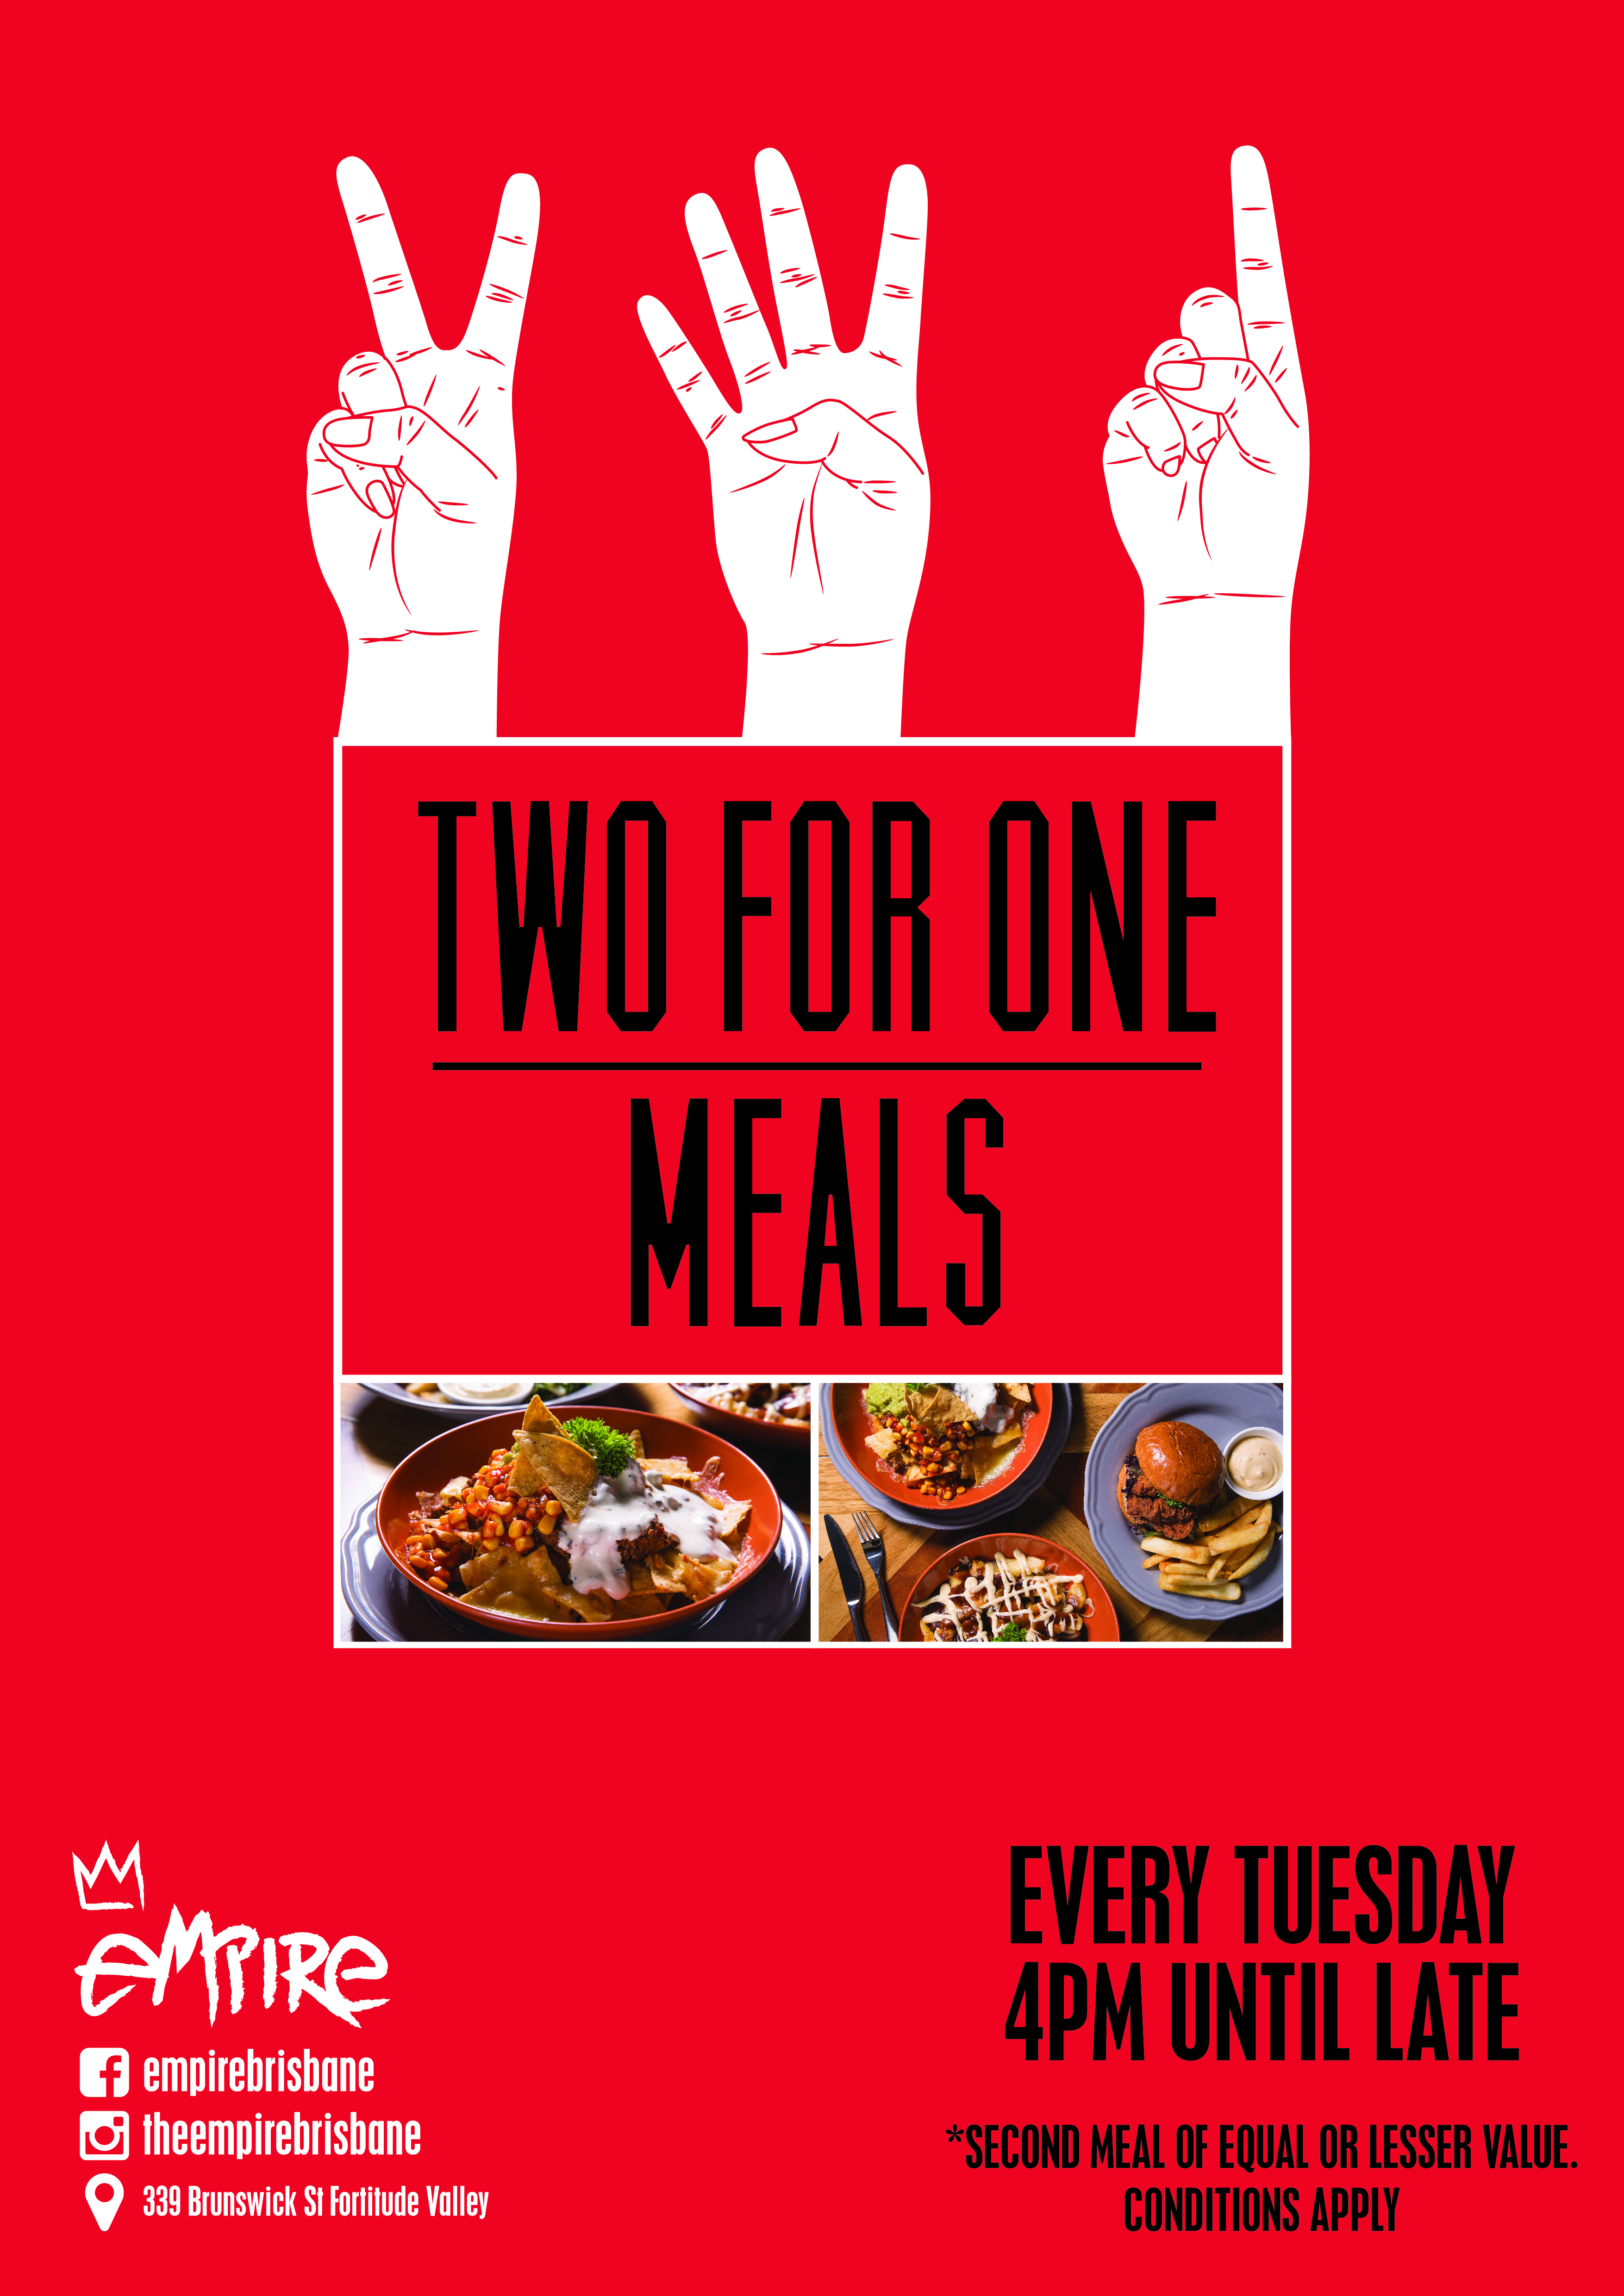 2 For 1 meals at Empire